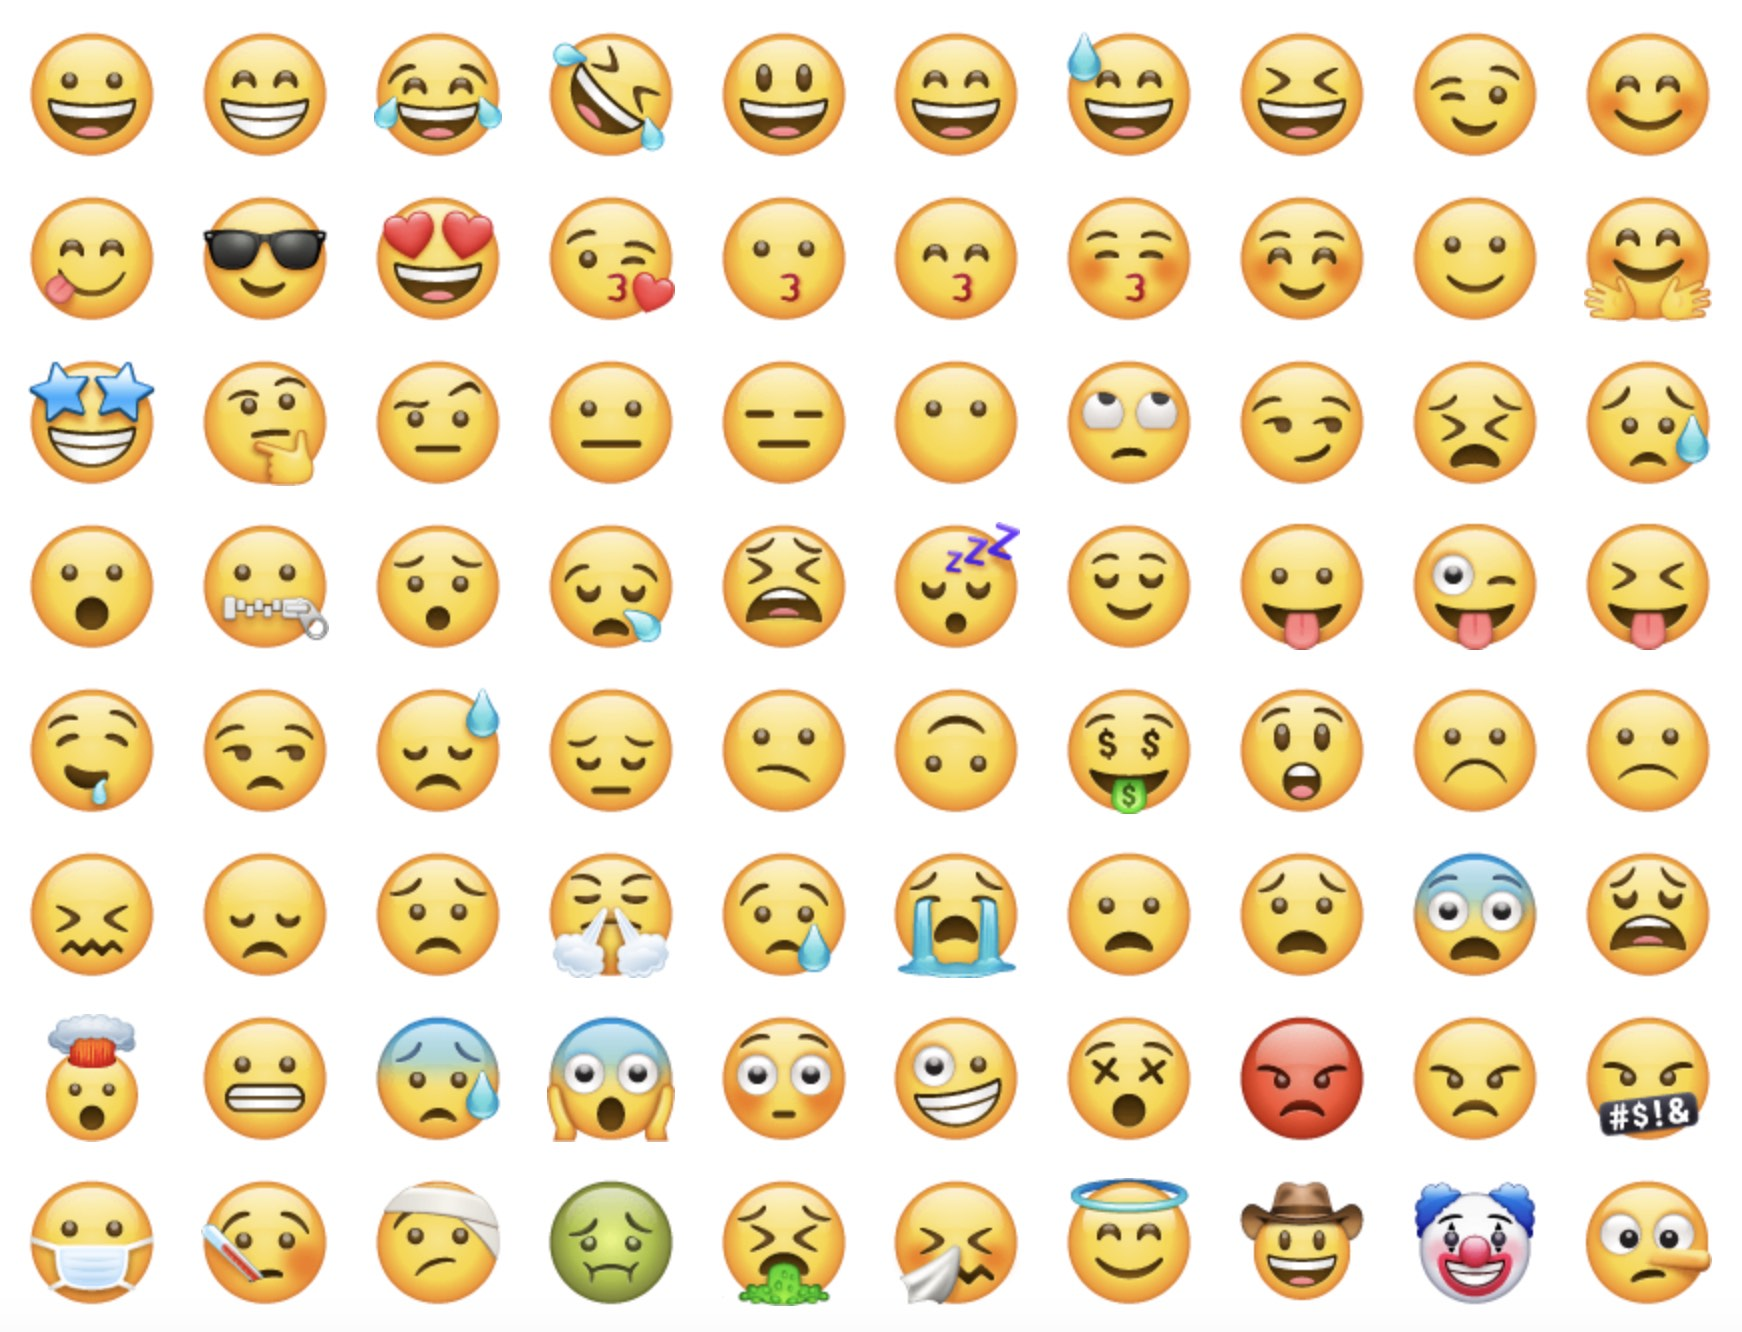 whatsapp-new-emoji-smileys-emojipedia-android-2.17